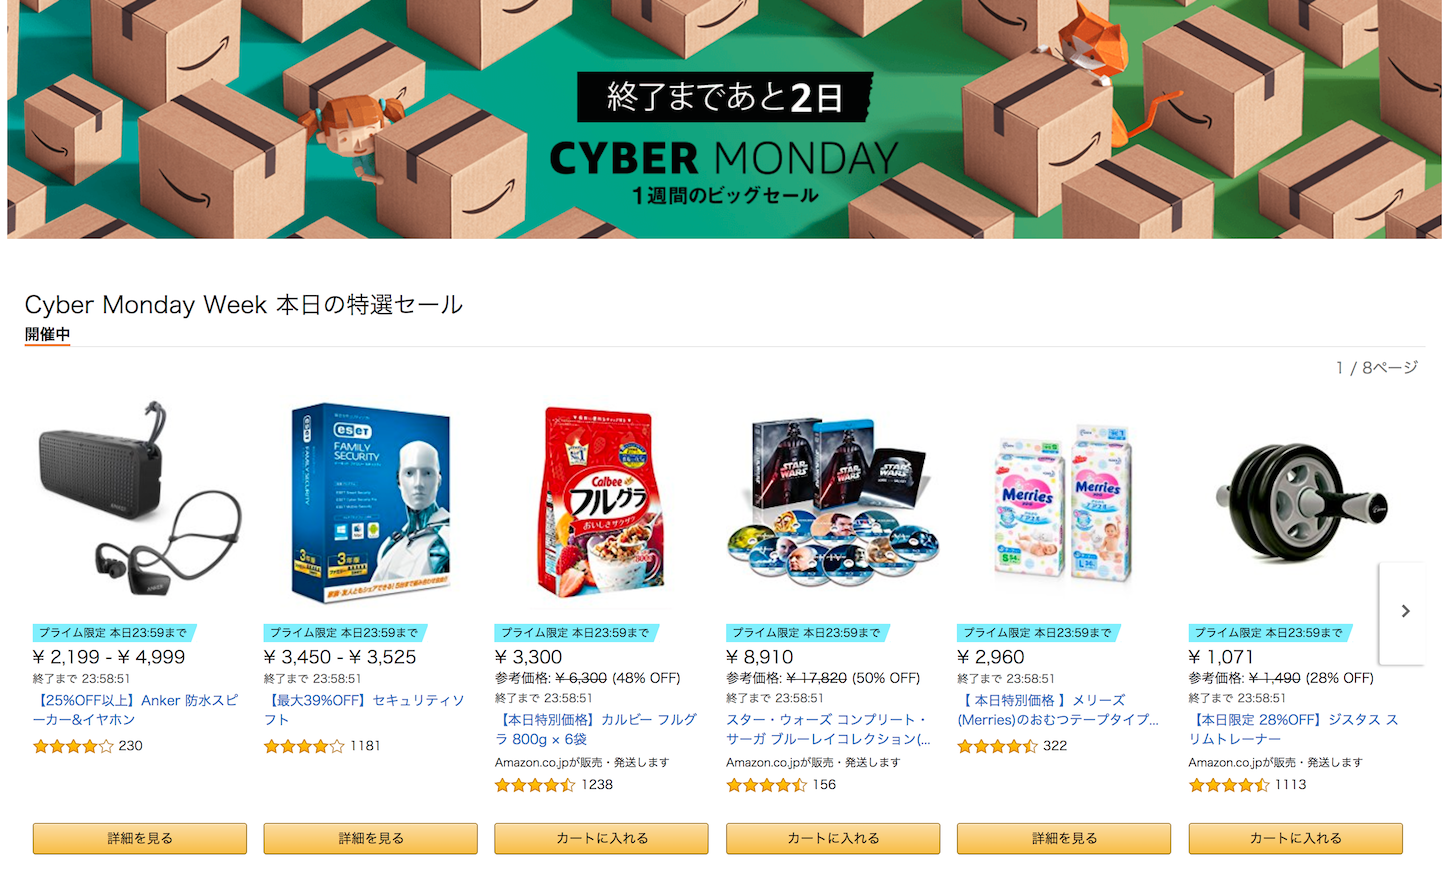 Cyber Monday Day 6